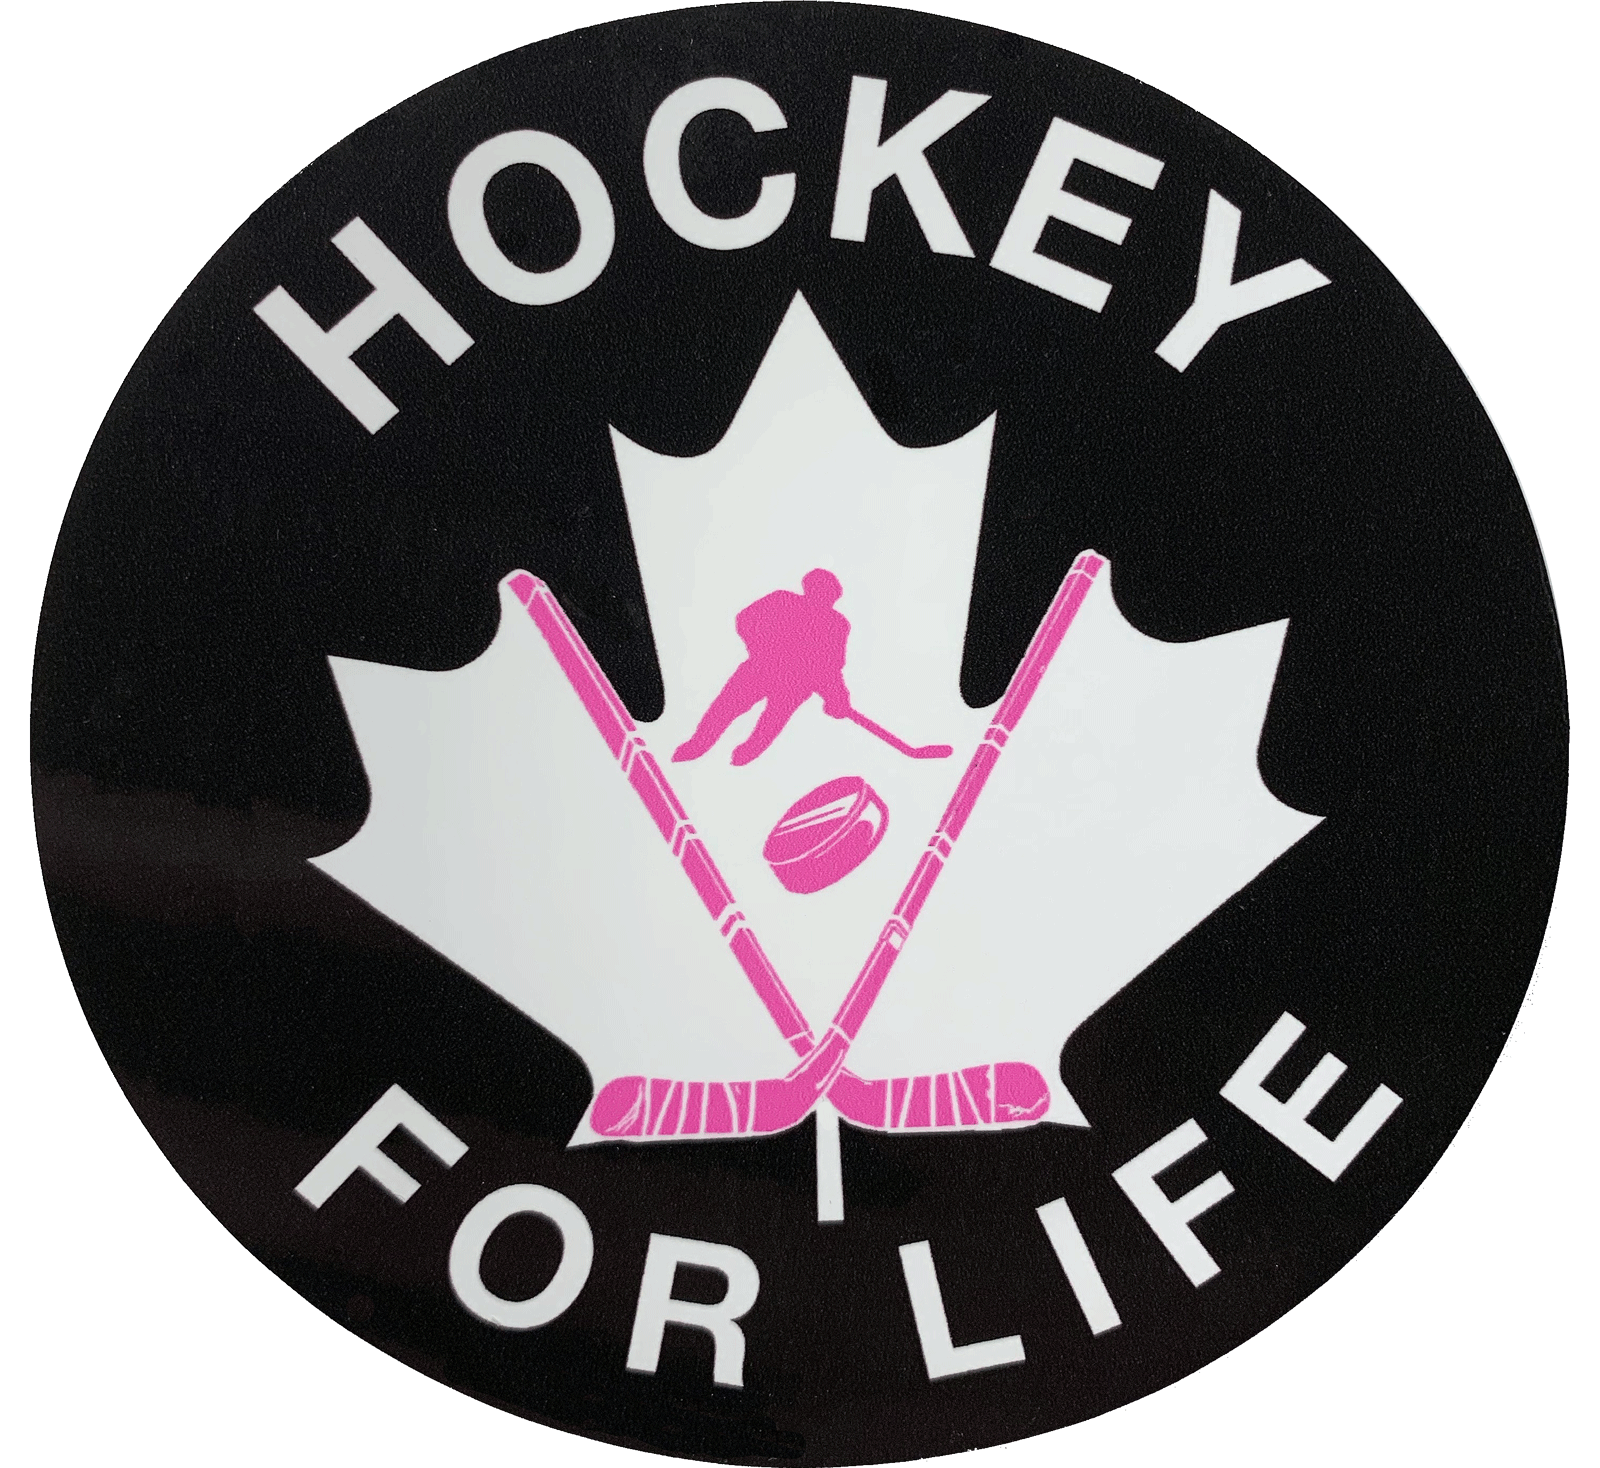 Hockey for Life Stickers - MIX - 2 for $5 - Frocked Up Clothing Co.